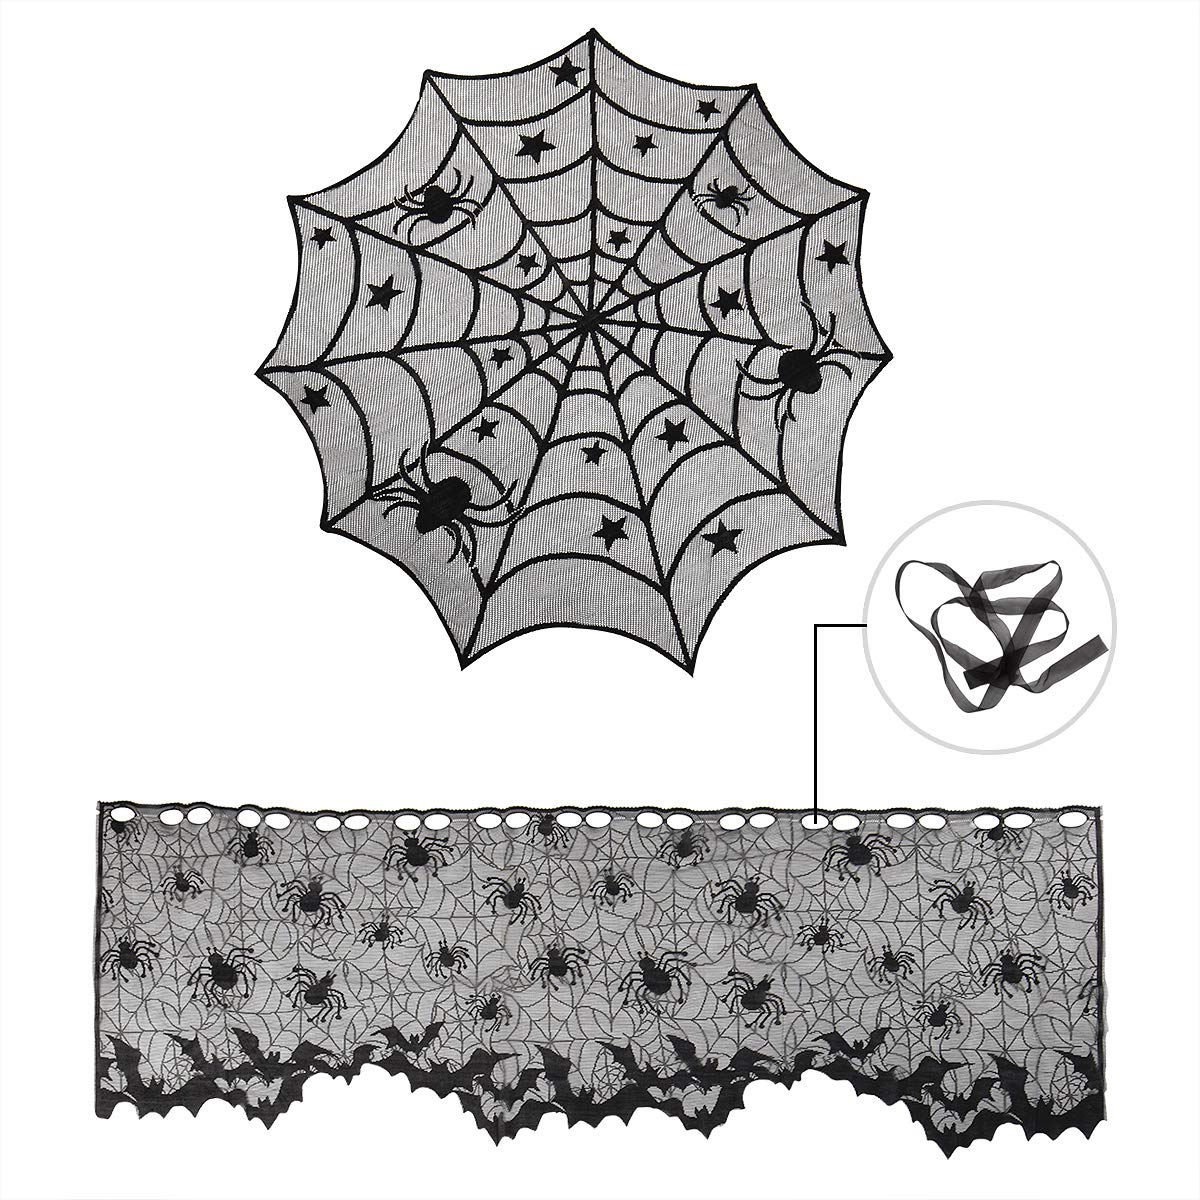 40'' Round Halloween Table Runner Spider Tablecloths Polyester Lace Table Topper and Black Lamp Shades Cover with Ribbon Lace Spider Fireplace Mantle Scarf Cover Window Valance for Halloween Decoration